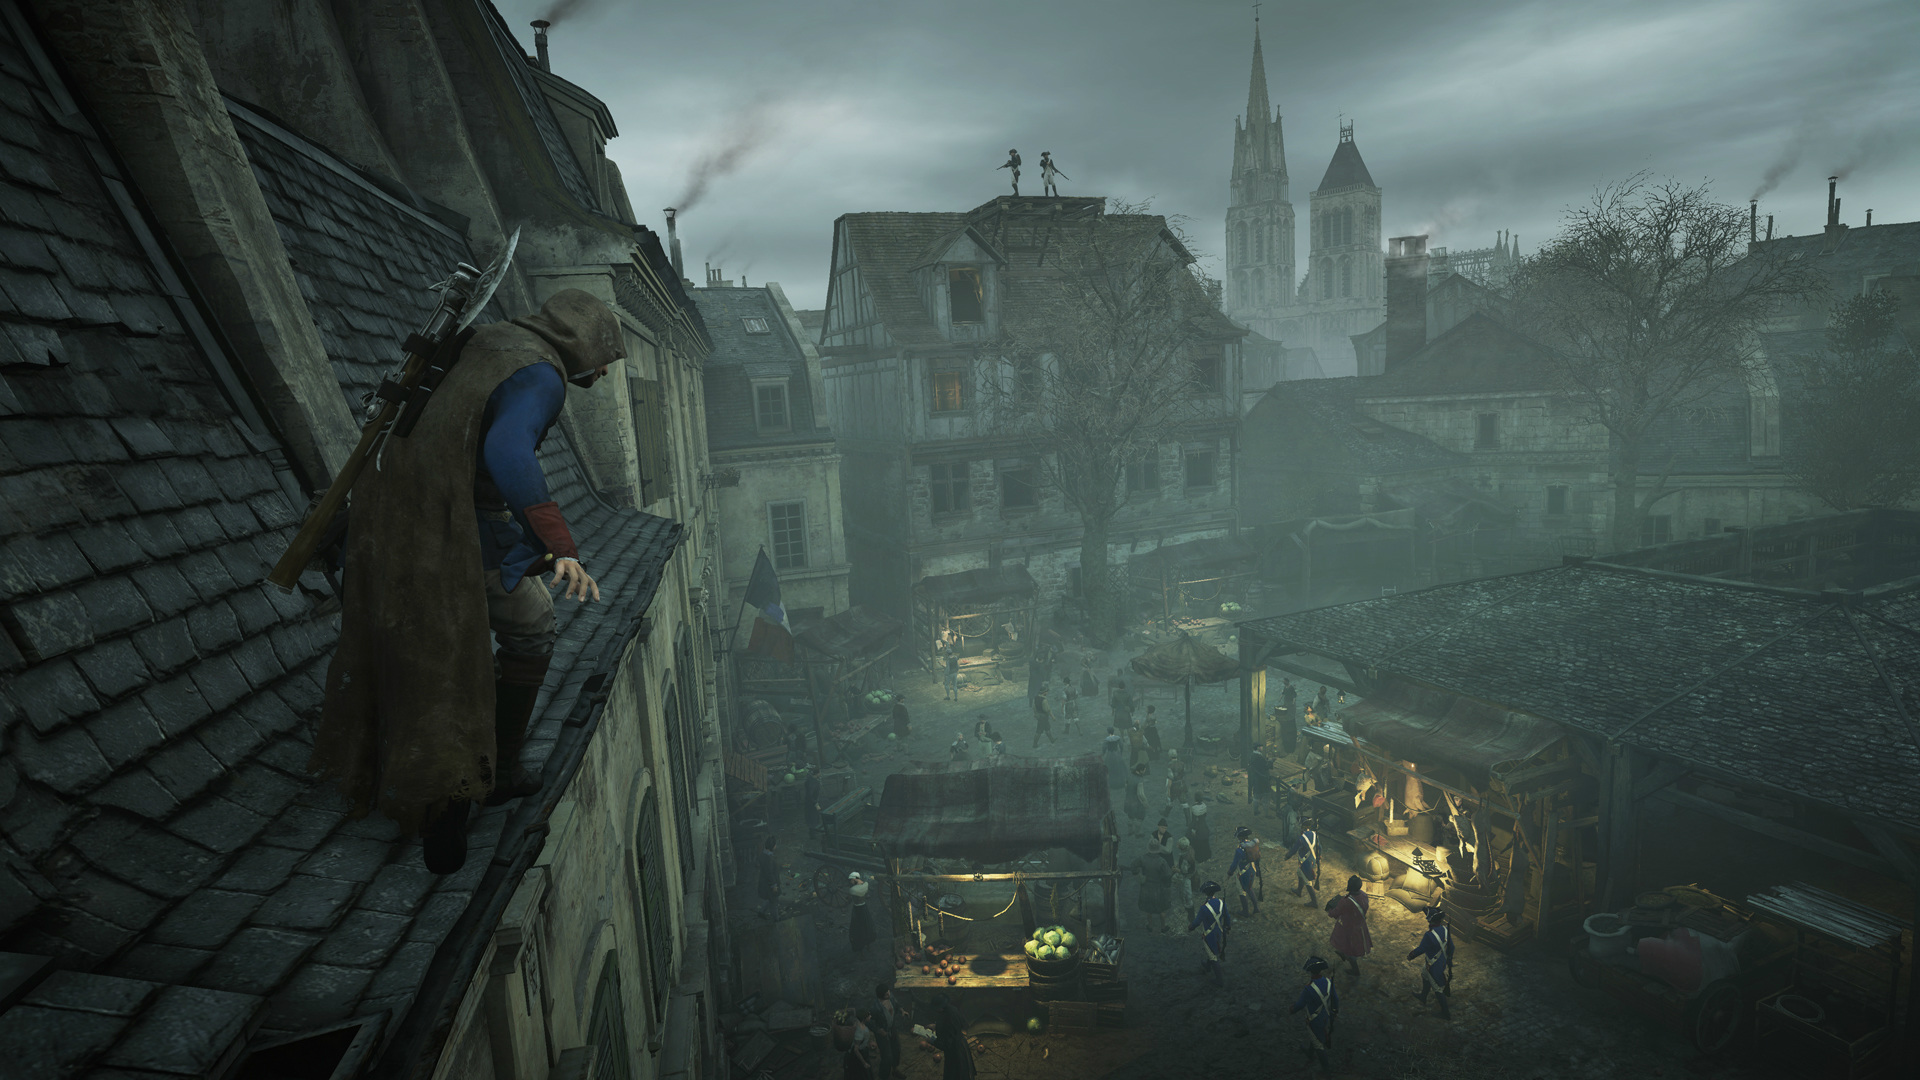 Assassin s creed unity review next available slot assassin s creed - The Facts